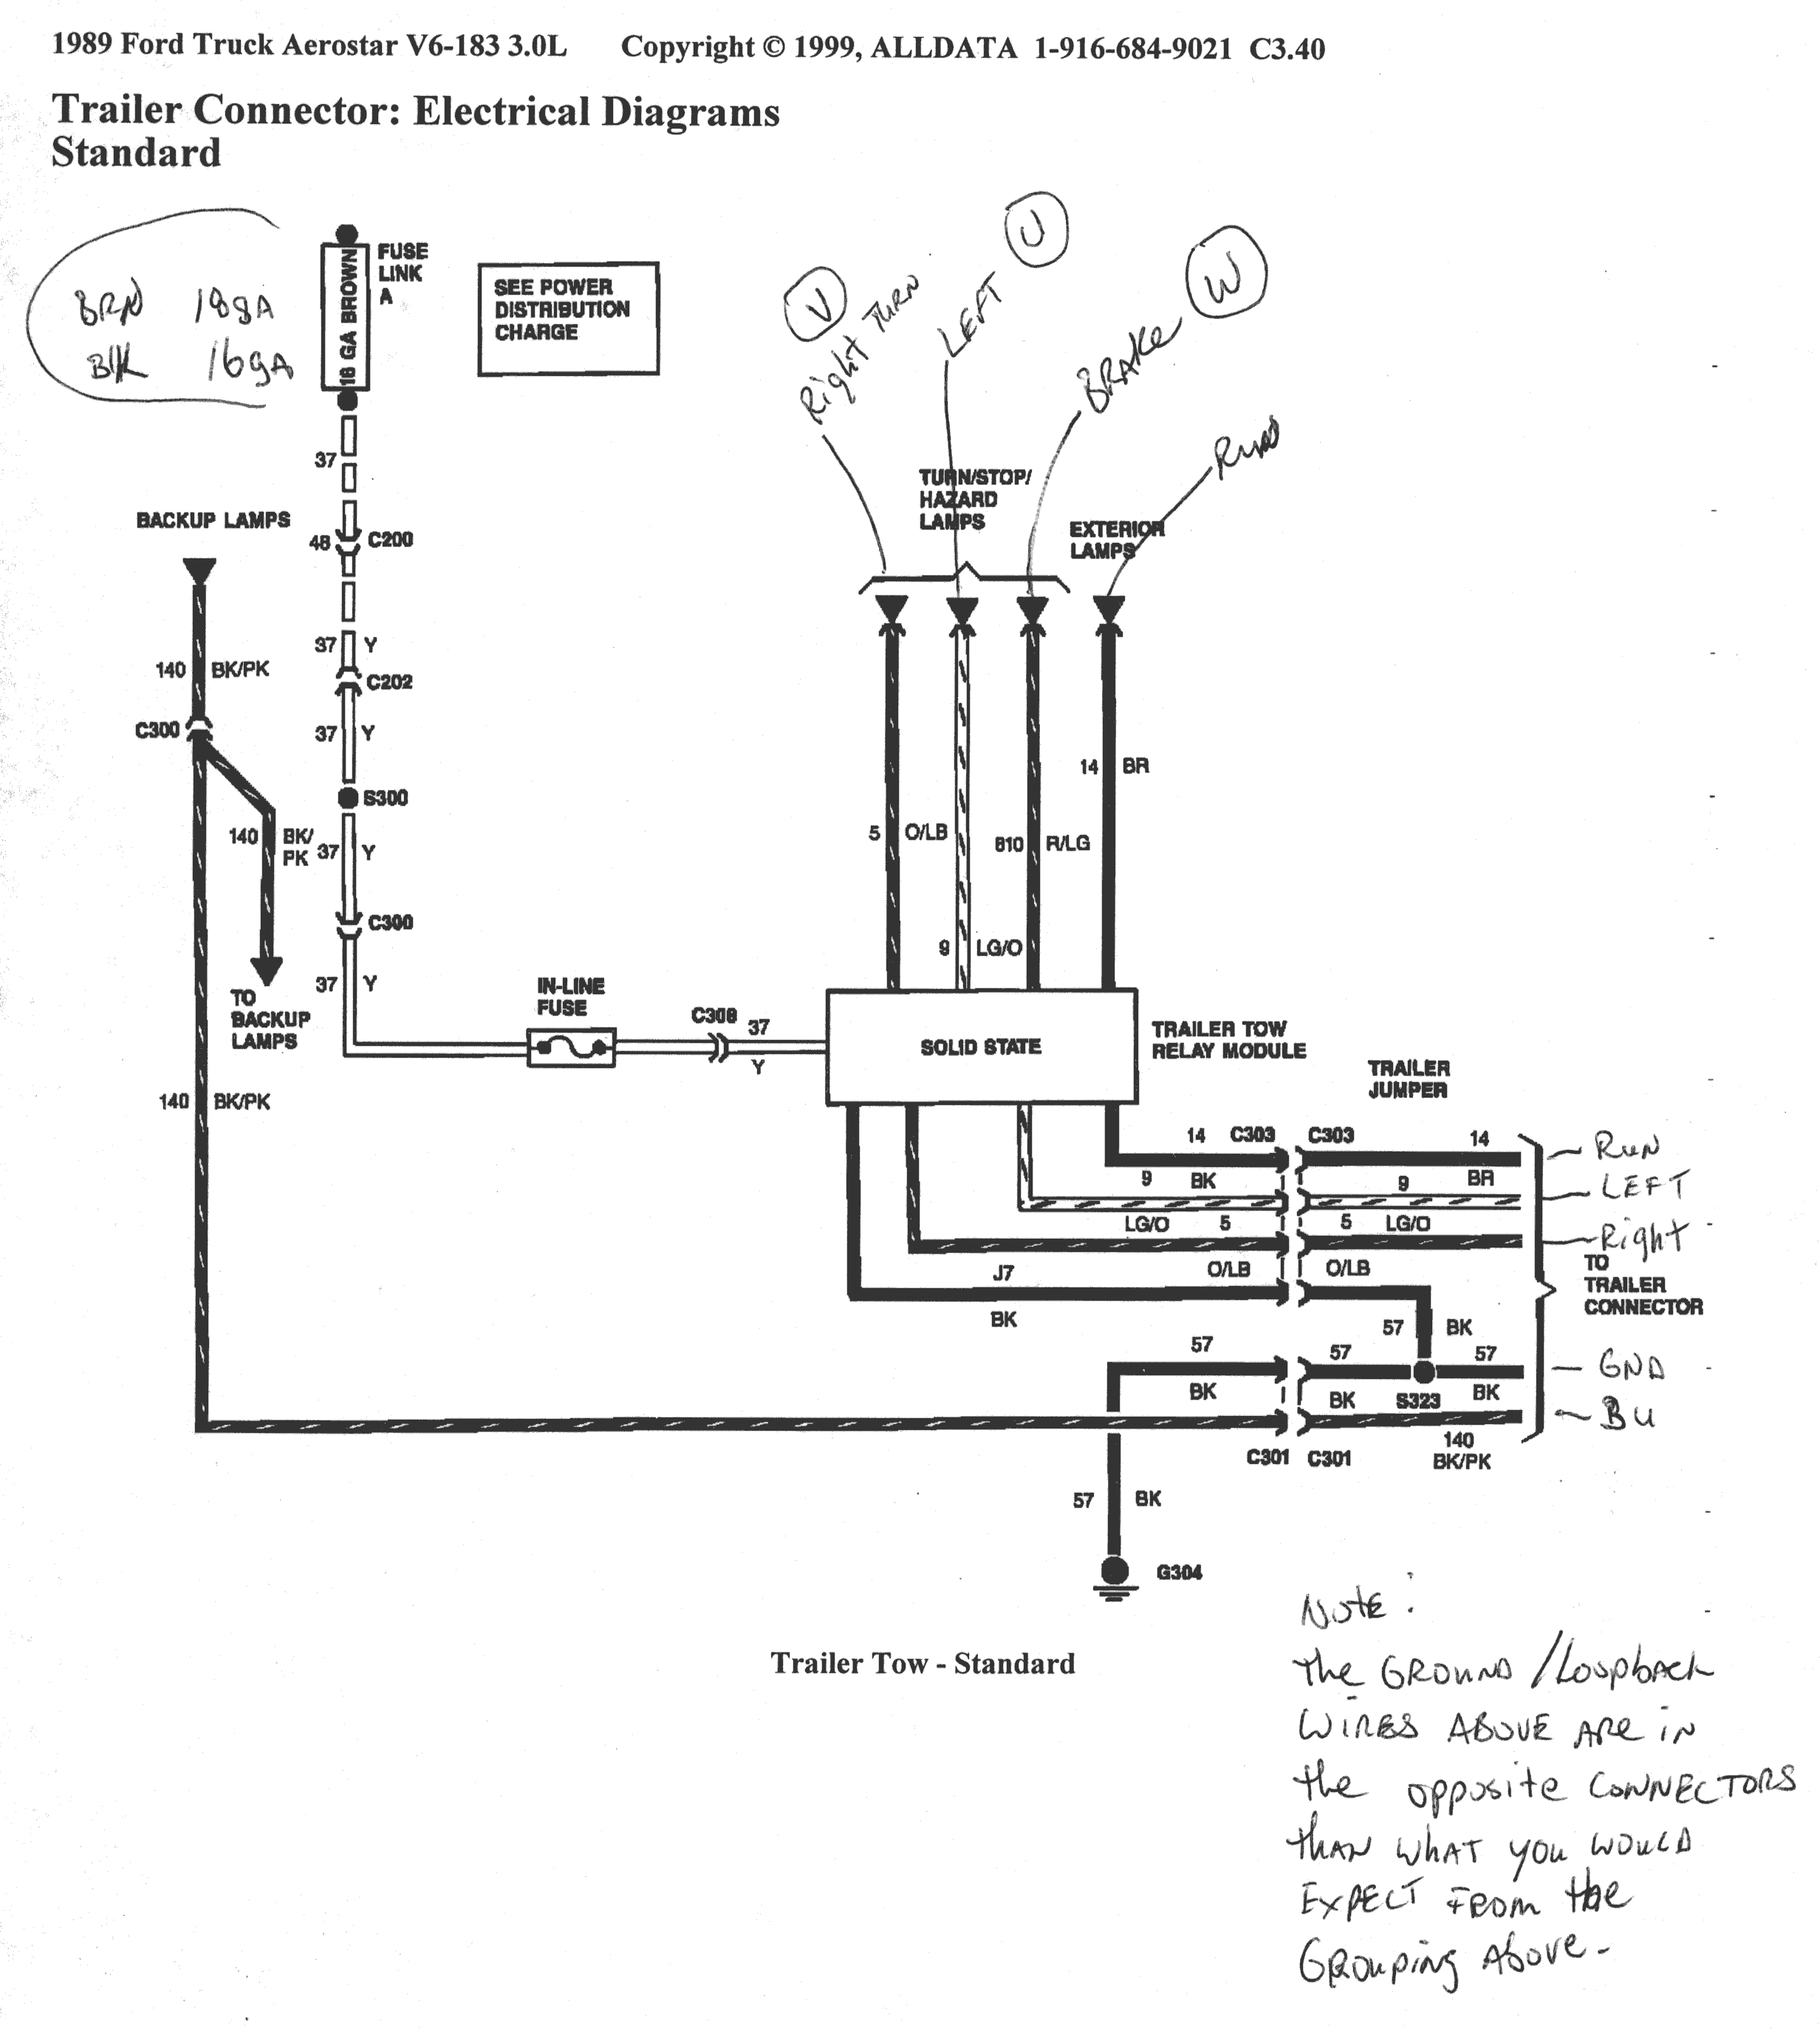 Class 8 Trailer Wiring Diagram | Manual E-Books - Class 8 Trailer Wiring Diagram